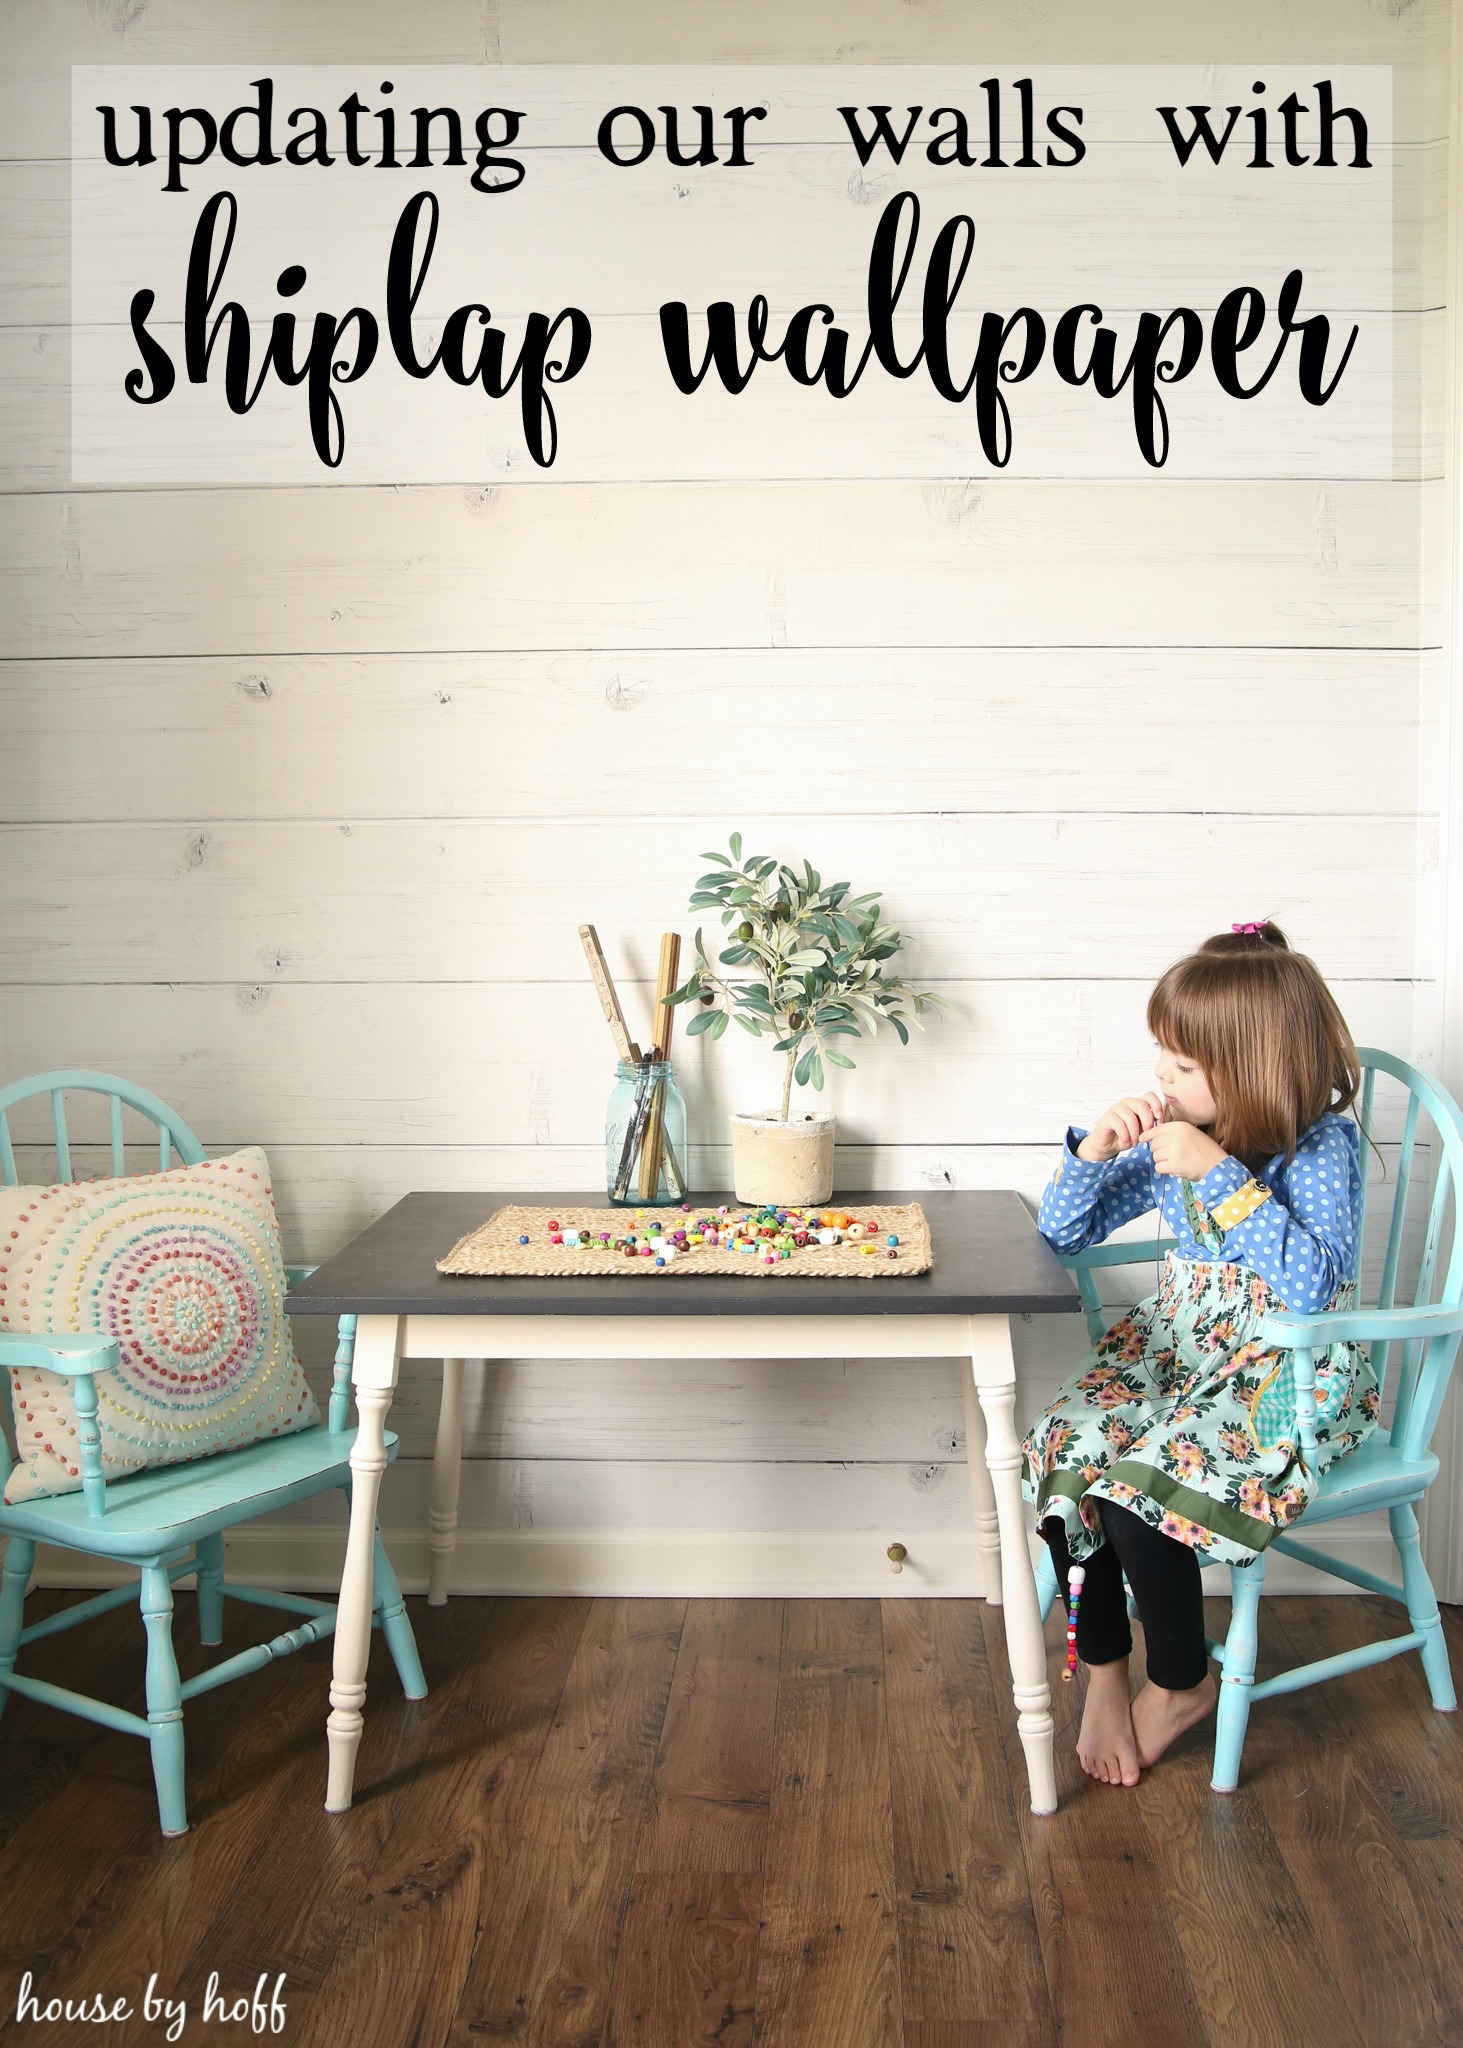 Updating Our Walls With Shiplap Wallpaper House By Hoff